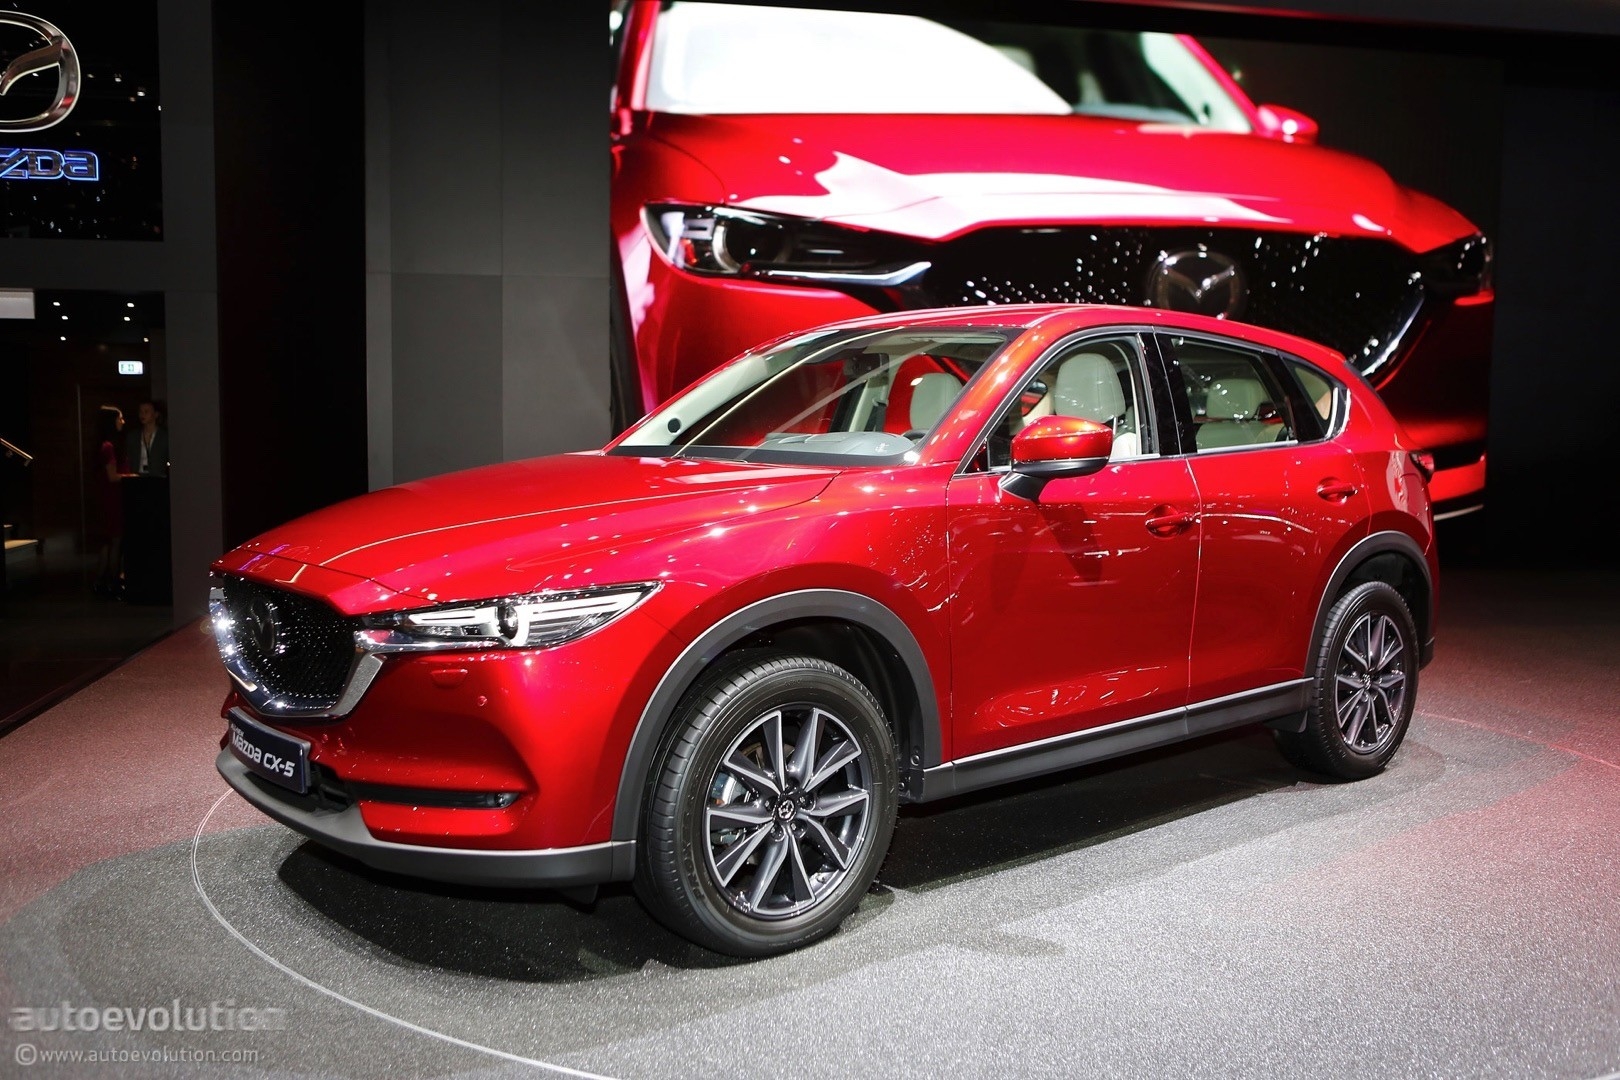 2018 mazda cx 8 teased in full it s more cx 9 than cx 5 autoevolution. Black Bedroom Furniture Sets. Home Design Ideas